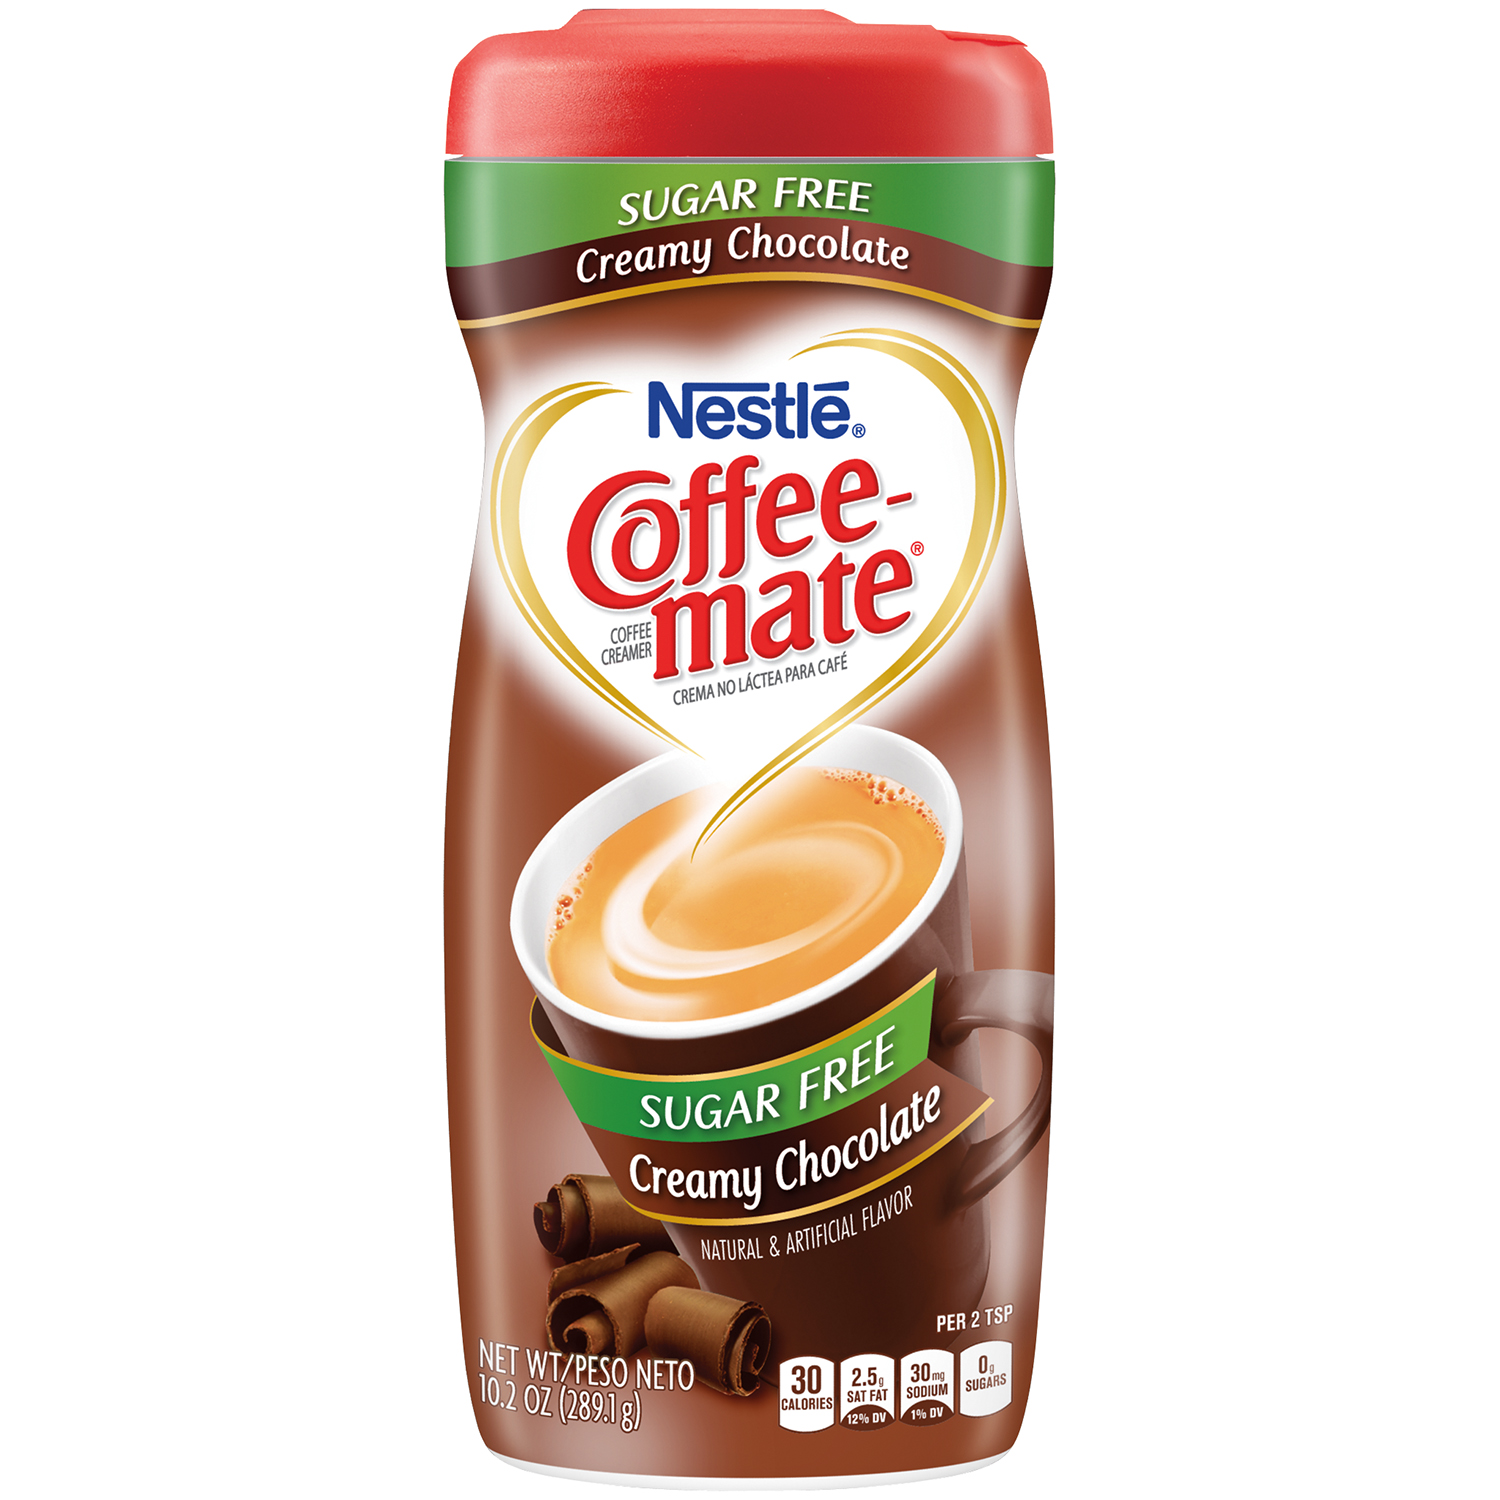 COFFEE-MATE Creamy Chocolate Sugar Free Powder Coffee Creamer 10.2 oz. Canister